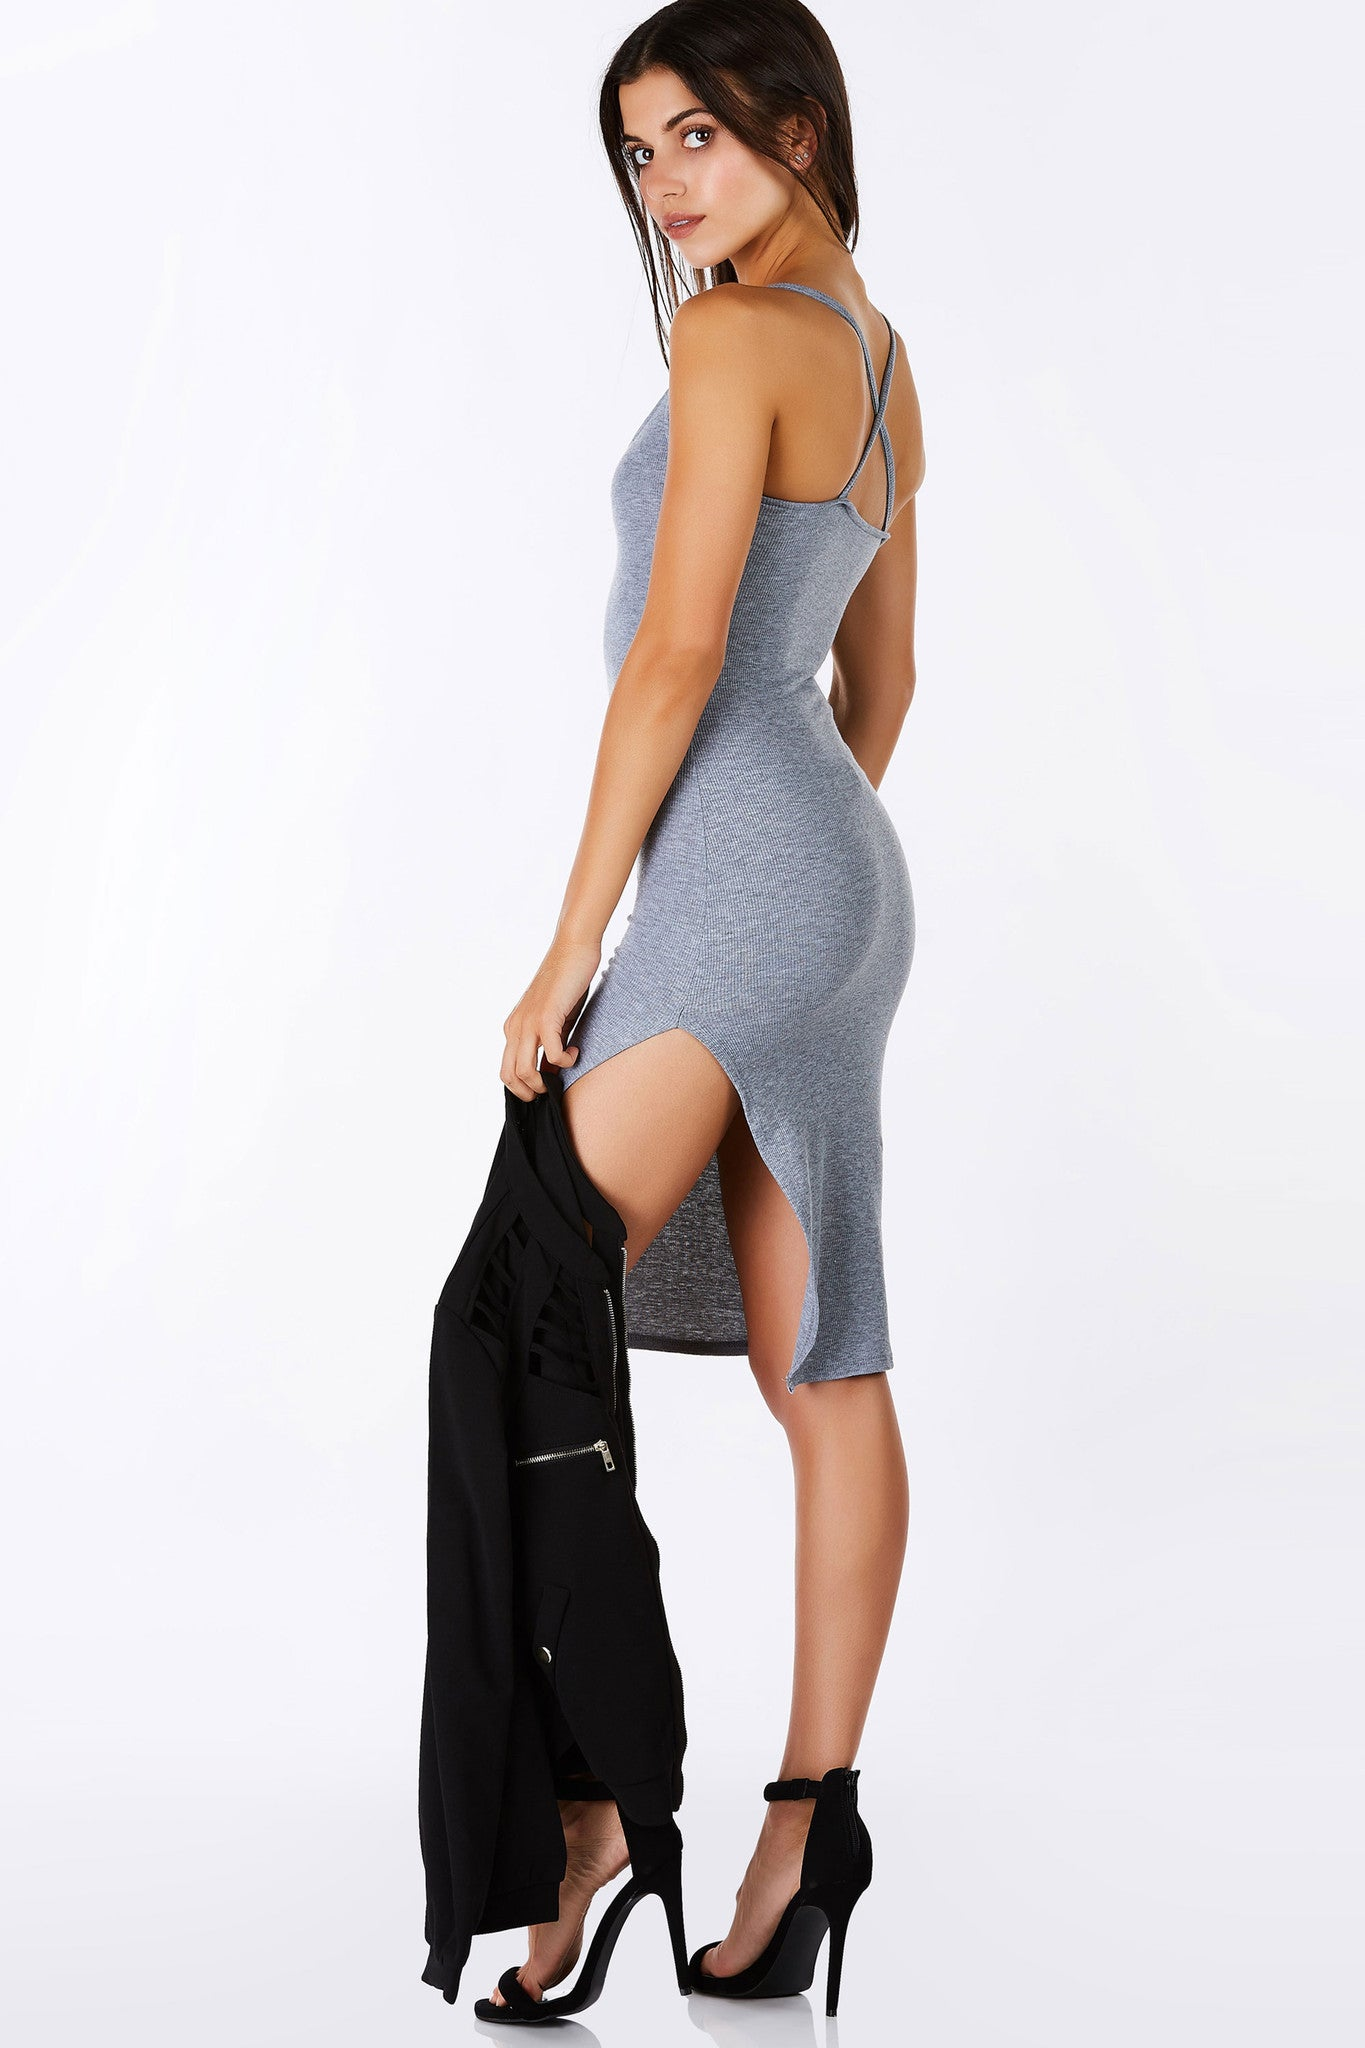 This ribbed midi dress is absolute perfection! Perfectm bodycon fit to accencuate your curves. Thin spaghetti straps, criss crossing at the back for added detail. Single slit on one side brings a flirty, sexy finish. Easy to dress up or down, the choice is yours!